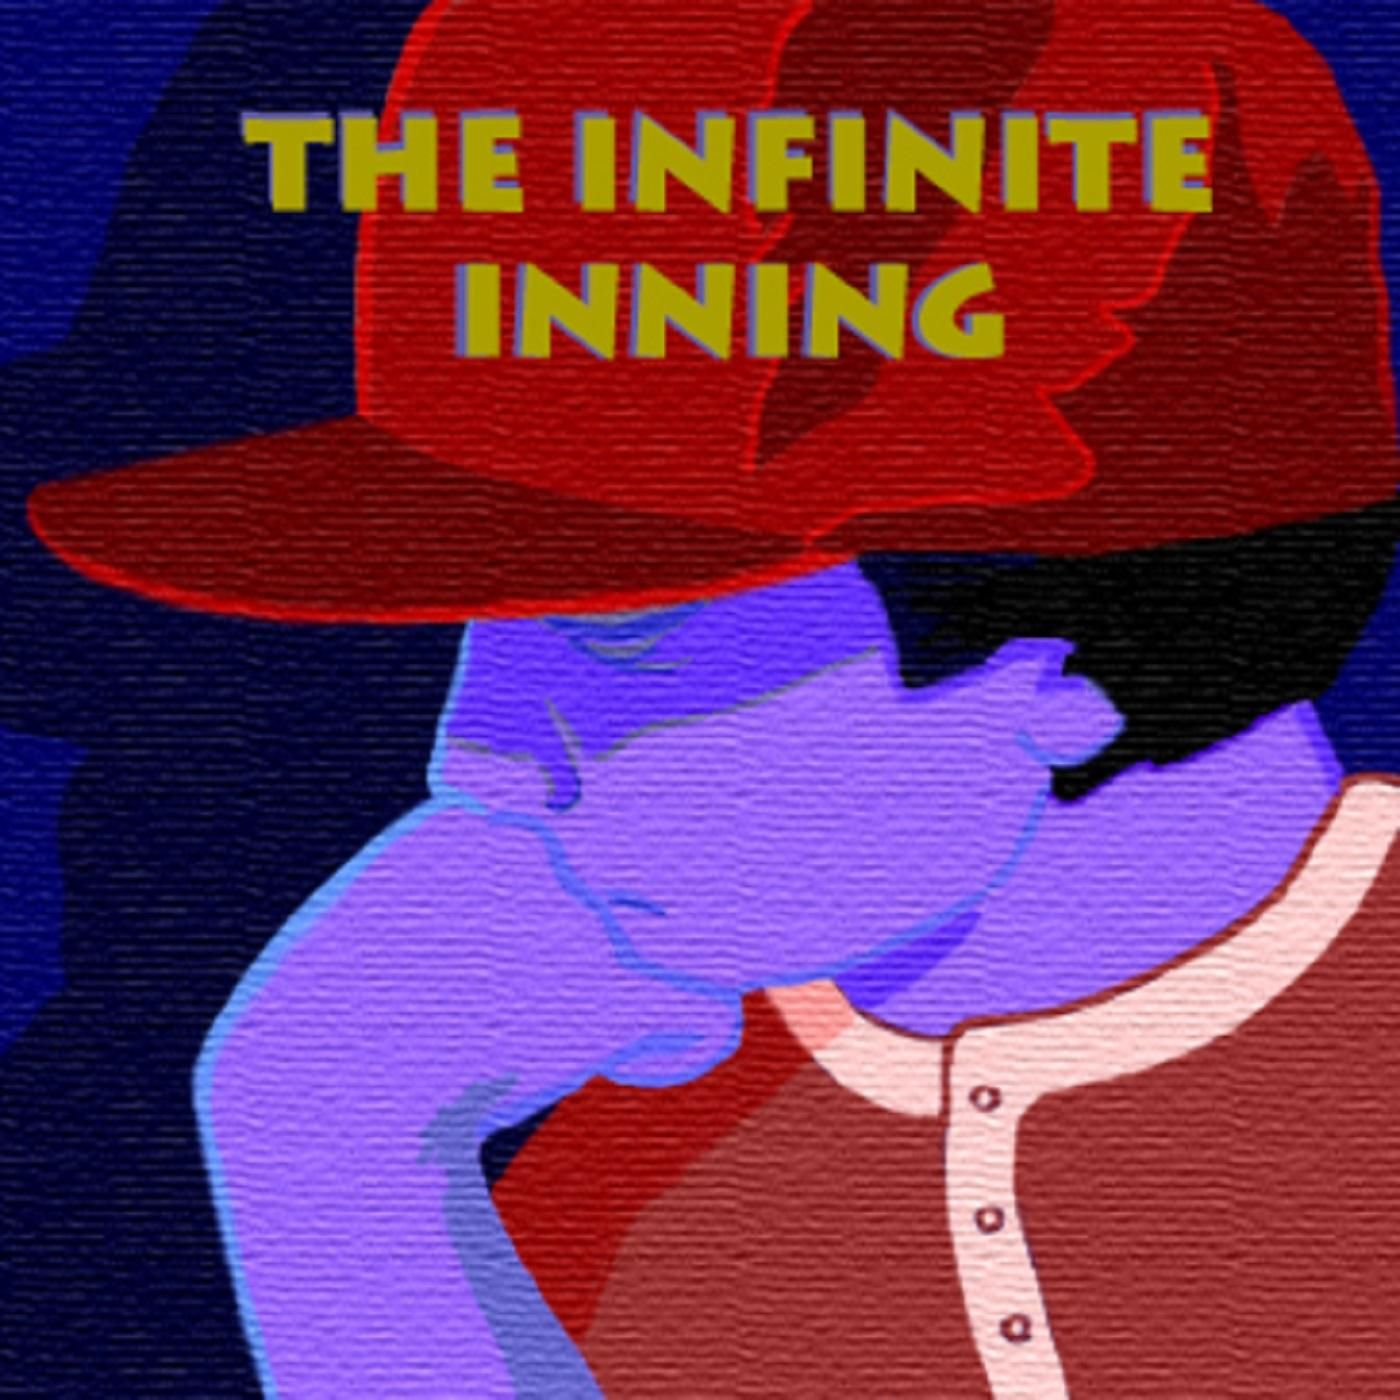 Infinite Inning 199A: The Tools of Ignorance